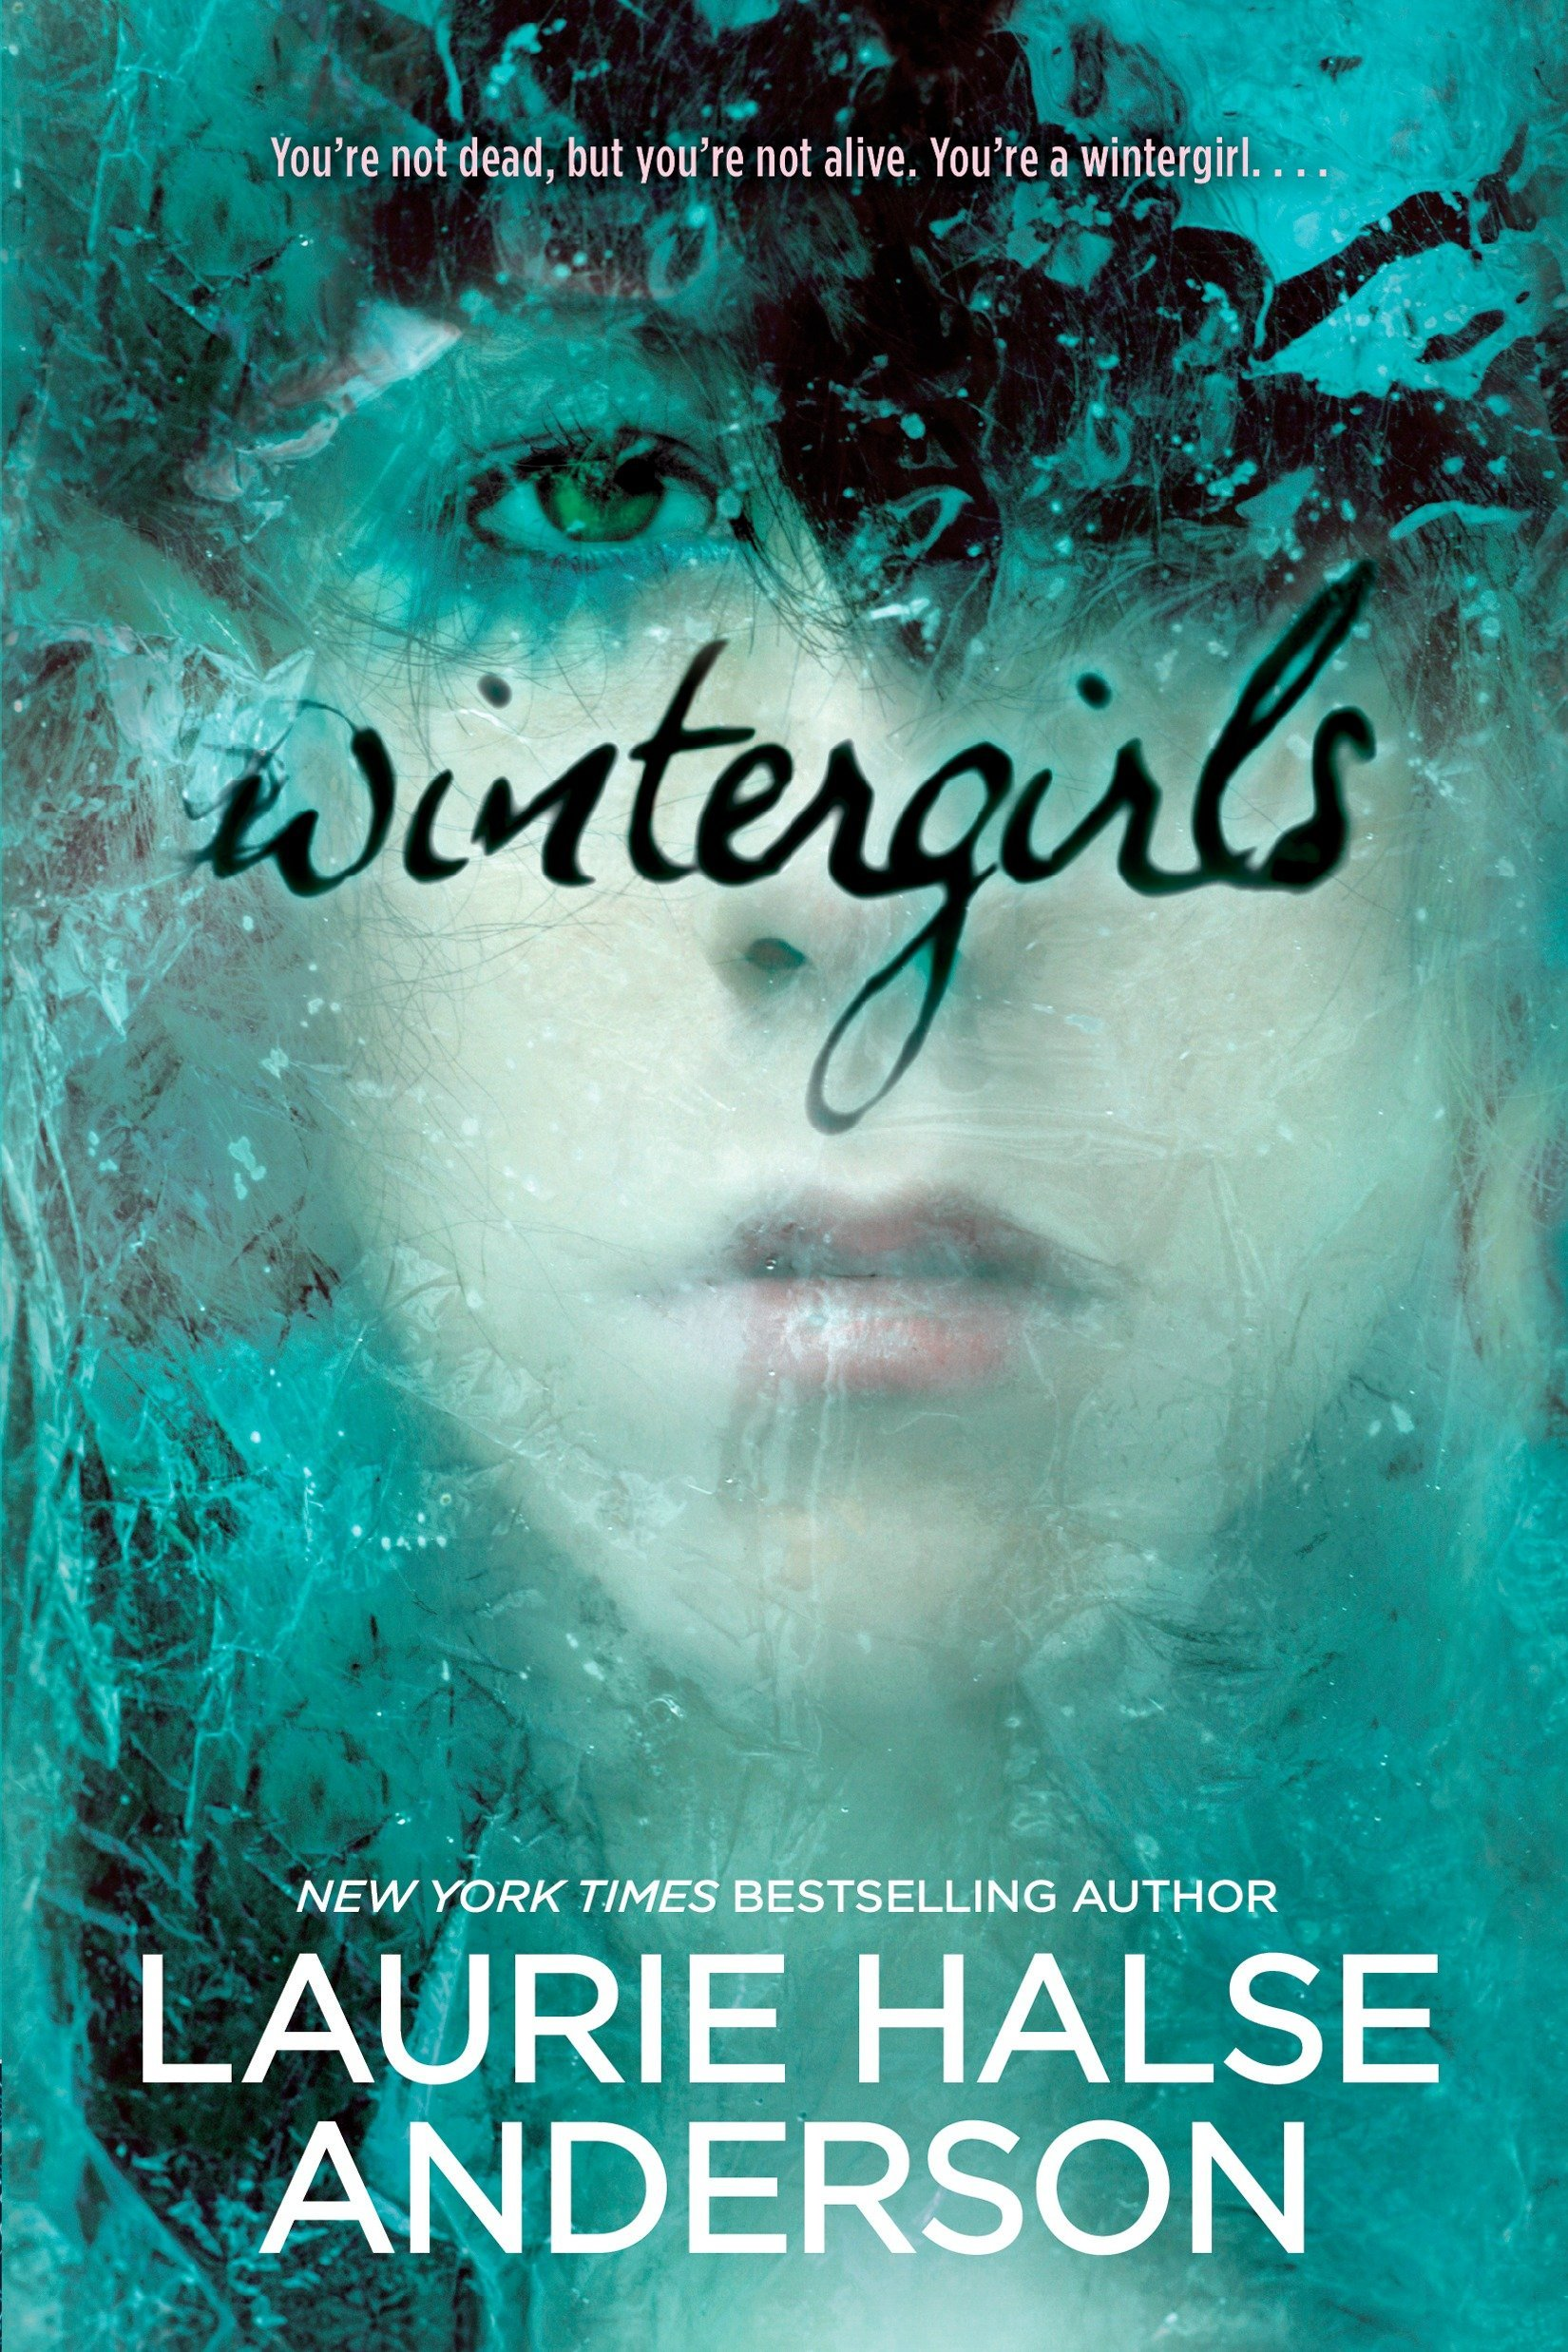 Amazon.com: Wintergirls (8601200507249): Anderson, Laurie Halse: Books